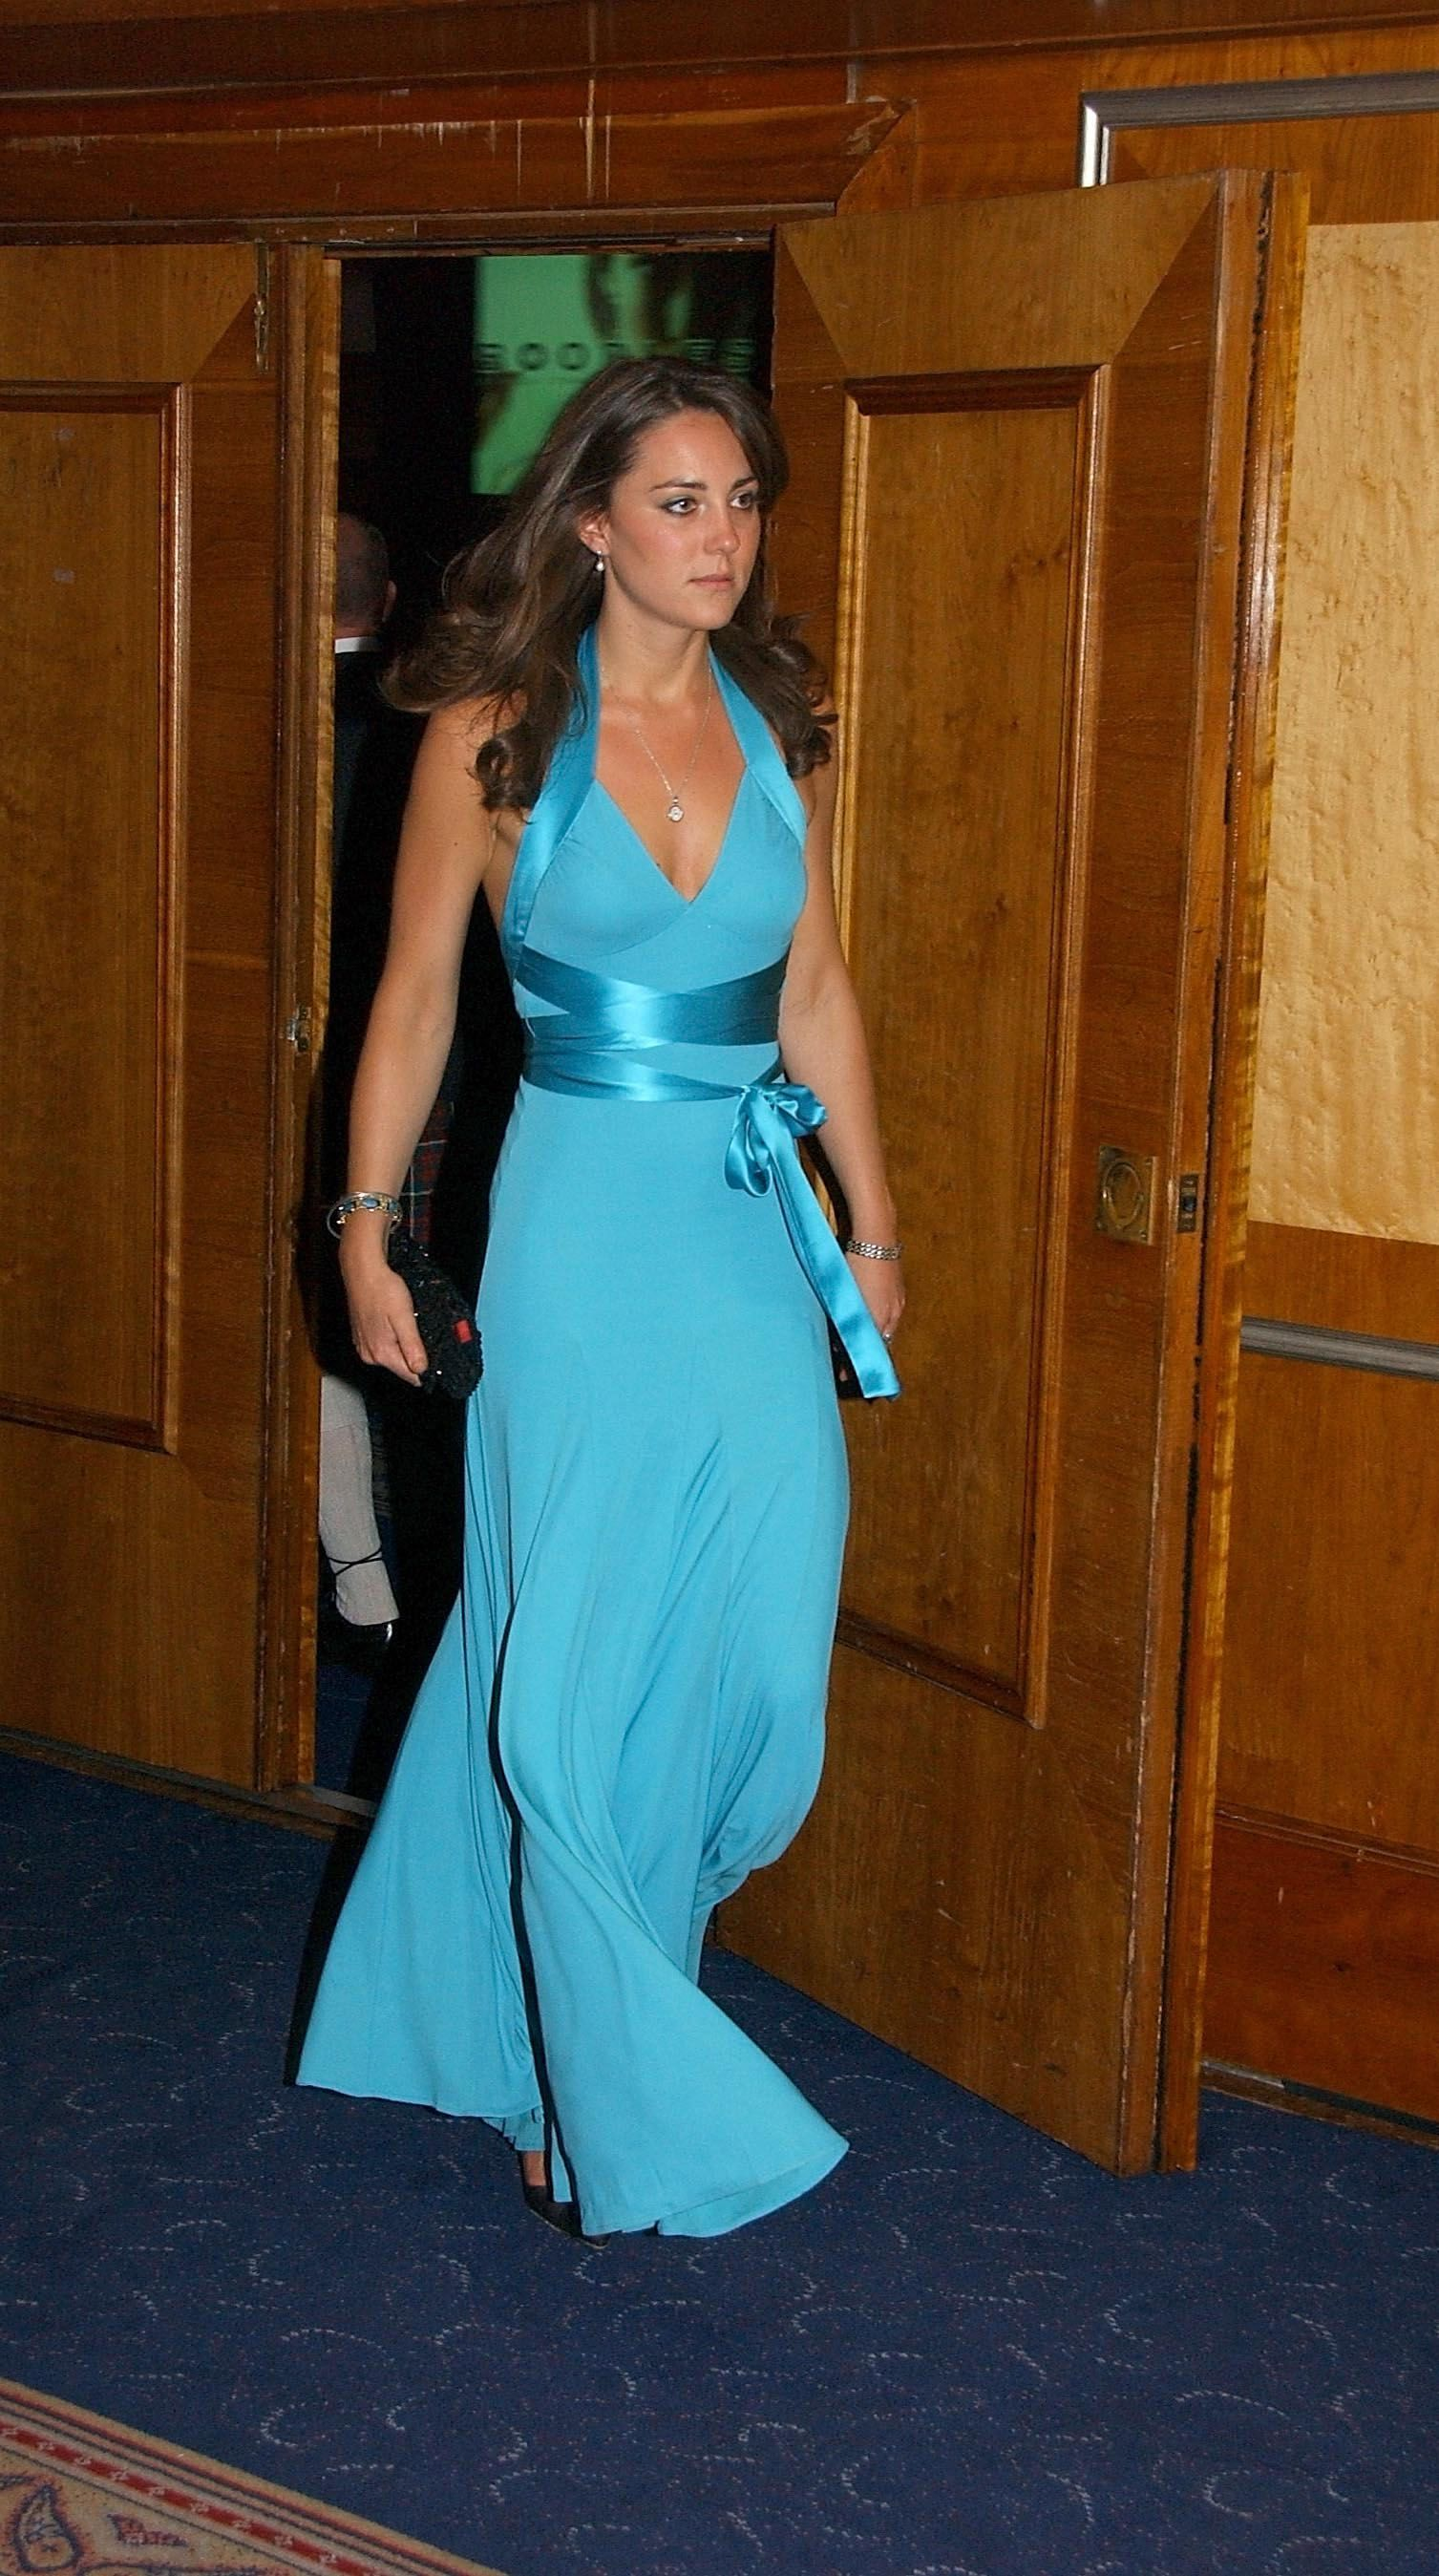 See 28 Photos of Kate Middleton From Before She Married Prince ...